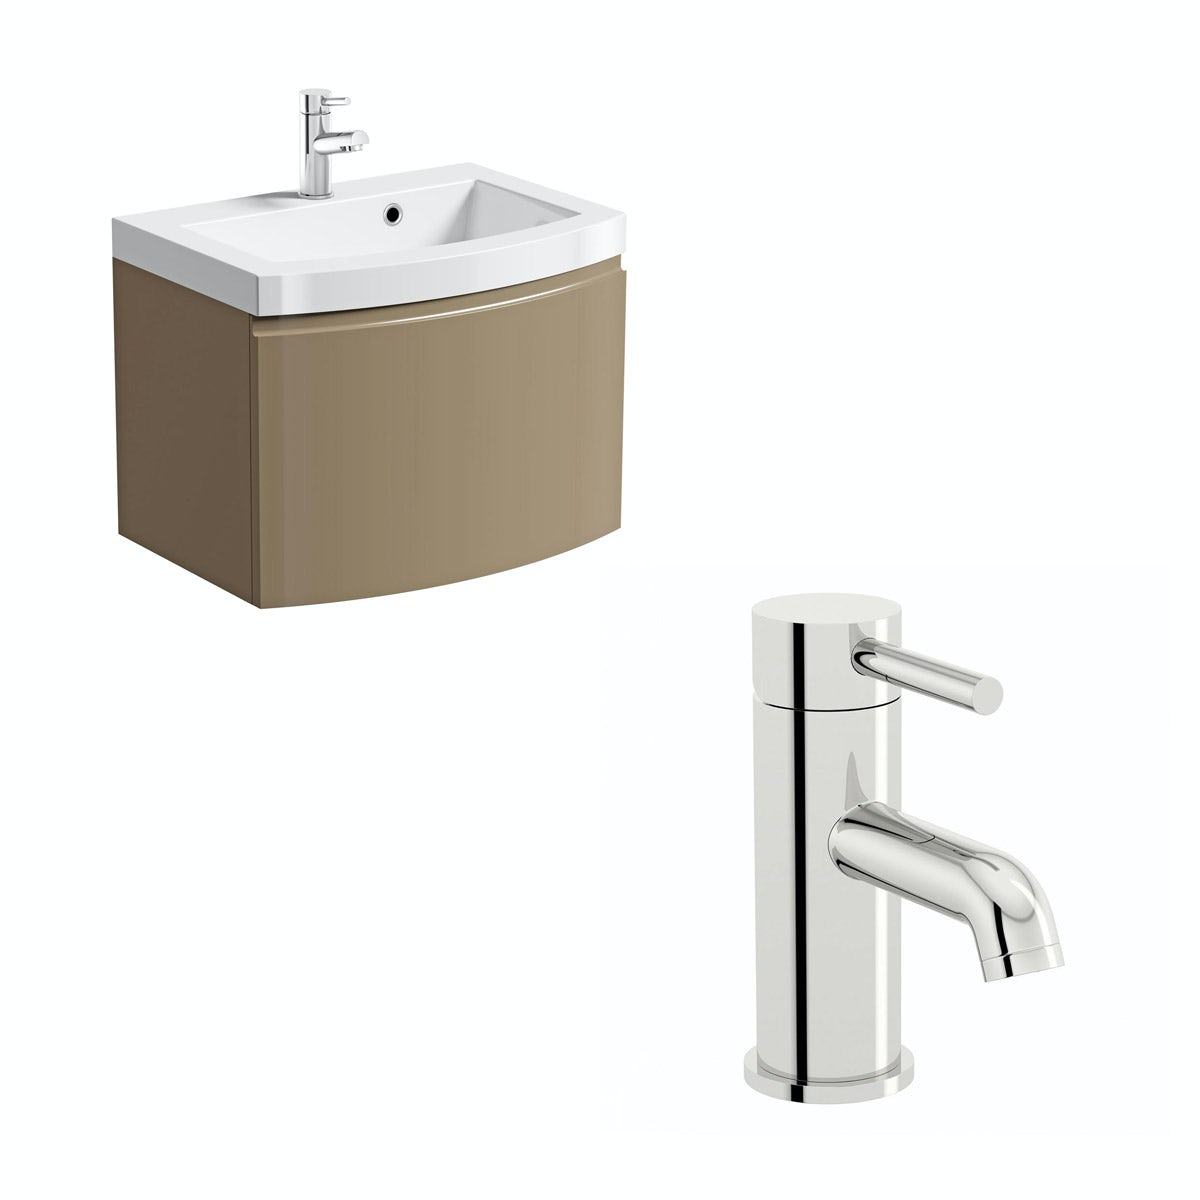 Mode Harrison Mocha Wall Hung Vanity Unit And Basin 600mm With Free Tap